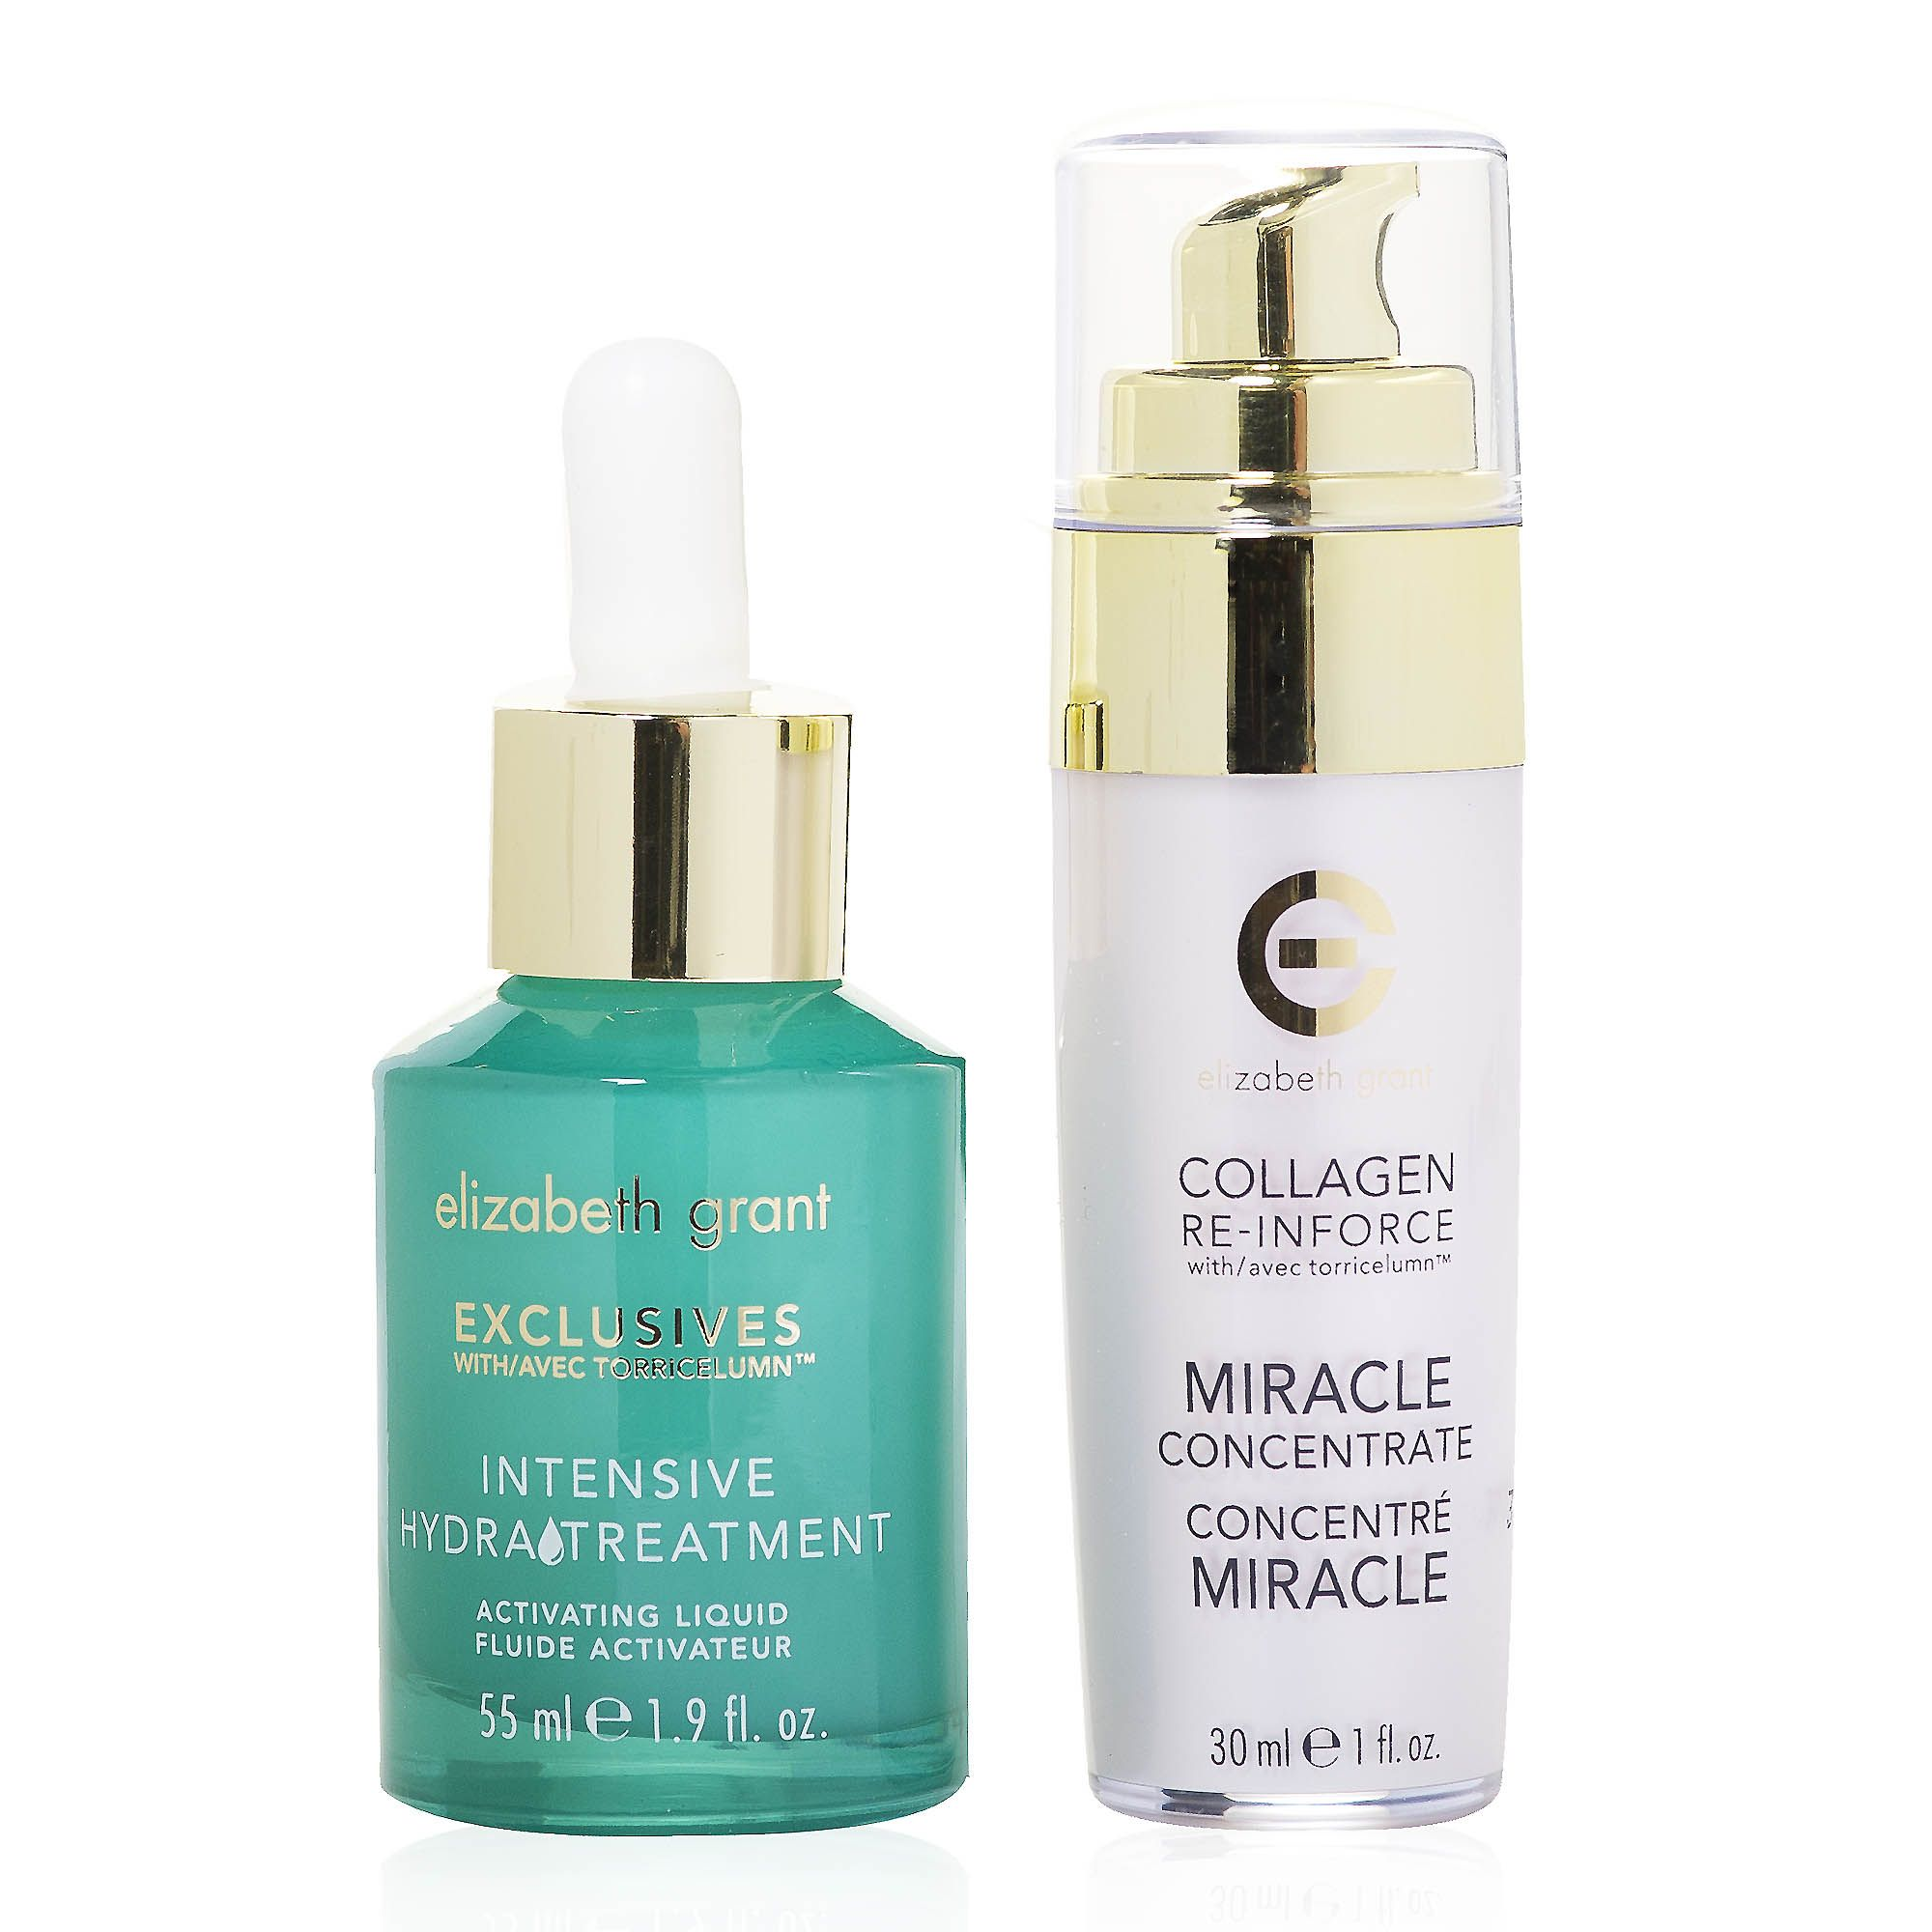 Elizabeth Grant Wonderful Duo hydratreatment siero bifasico e collagen siero